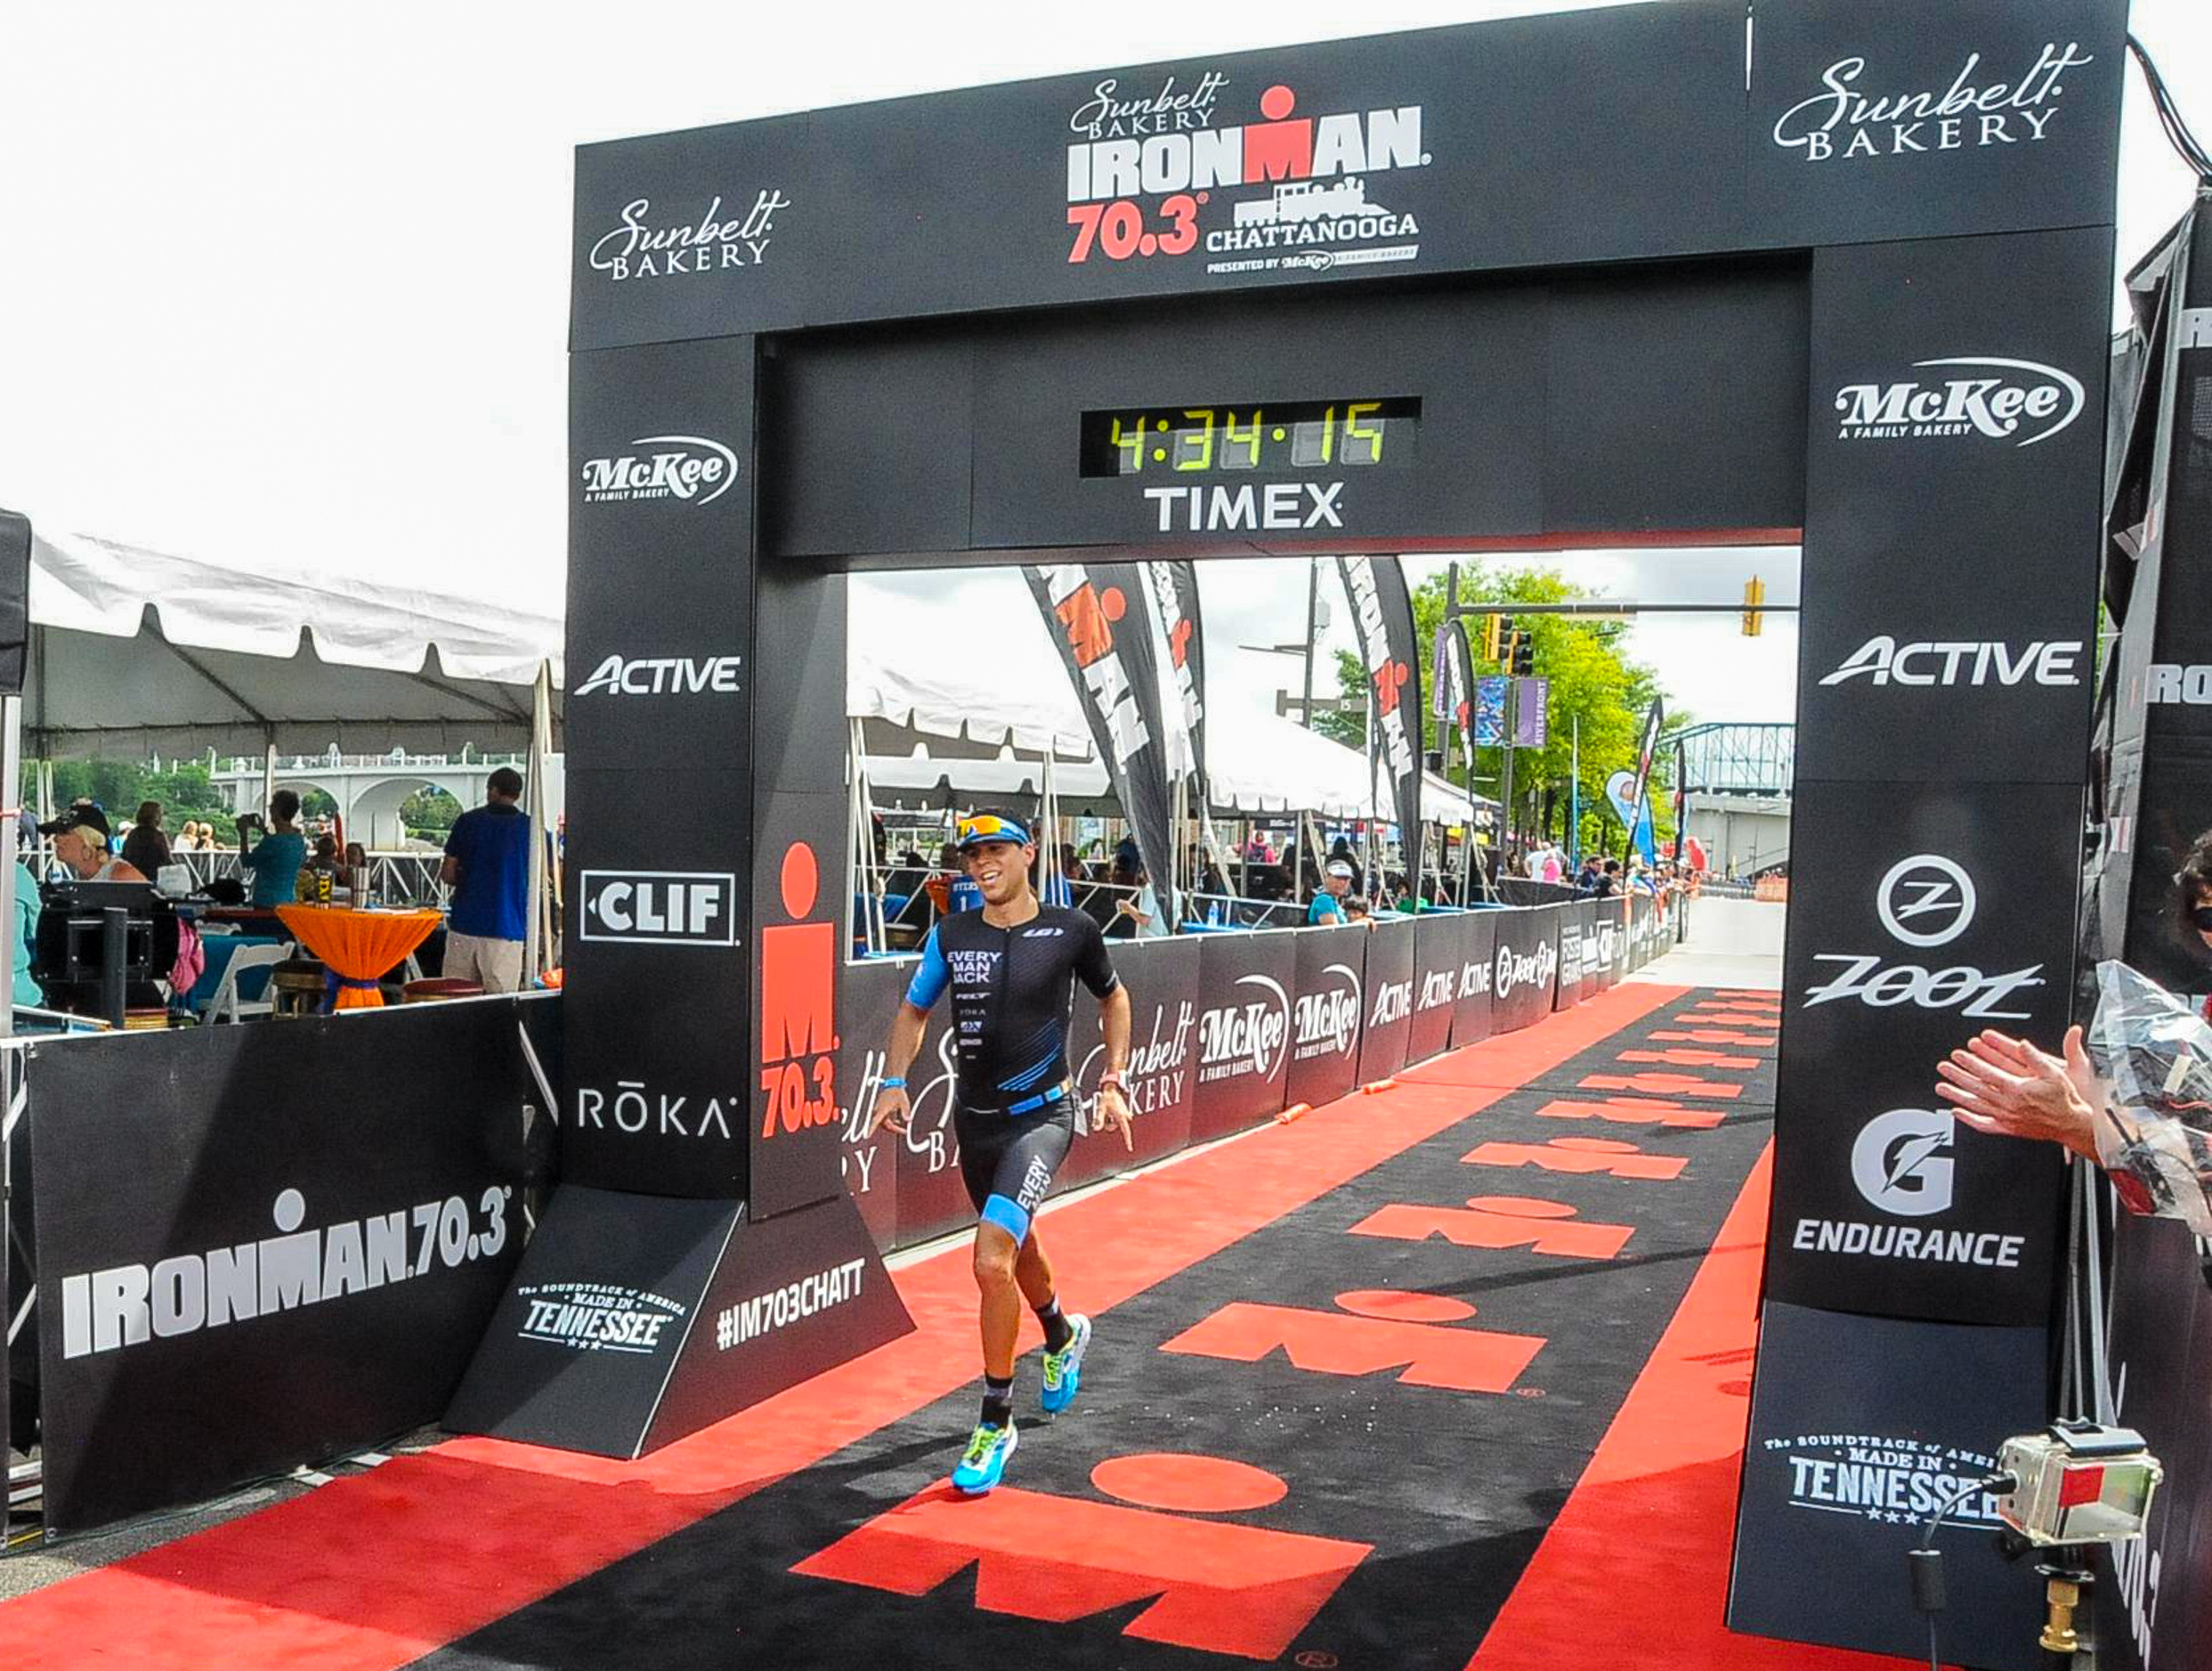 Ironman 70.3 Chattanooga